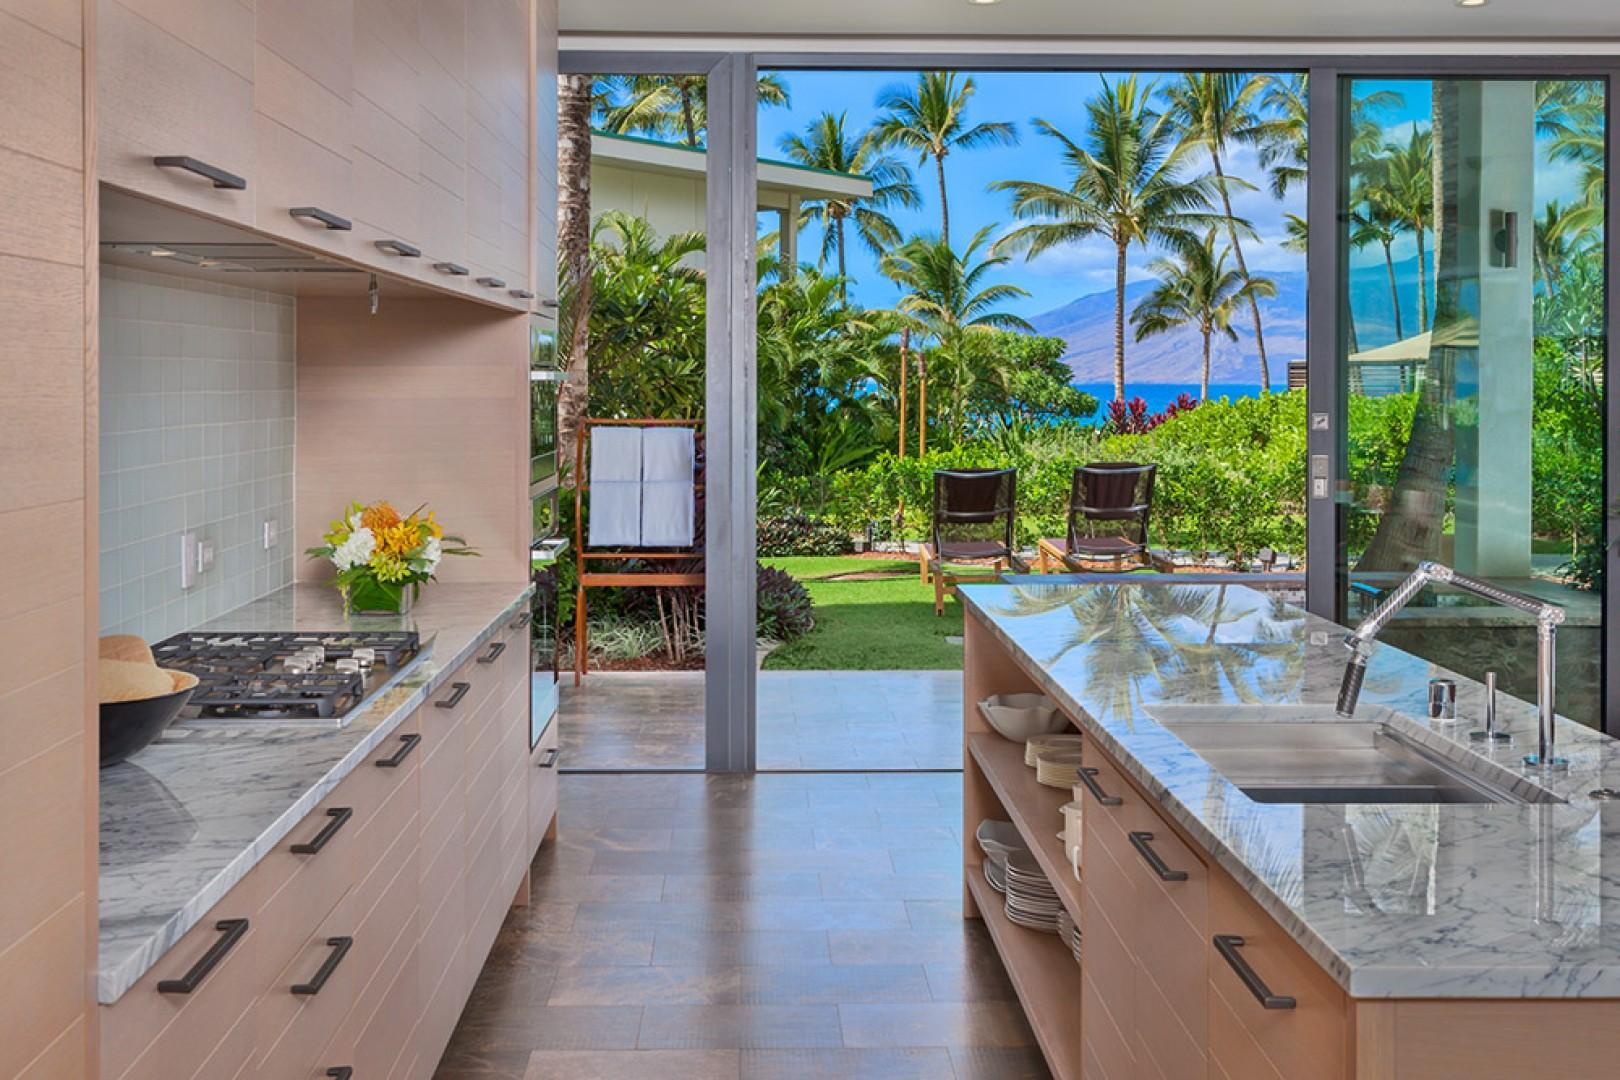 SeaGlass Villa 810 at Andaz Maui Wailea Resort - Create Maui Inspired Culinary Masterpieces in the Meile Equipped Gourmet Kitchen